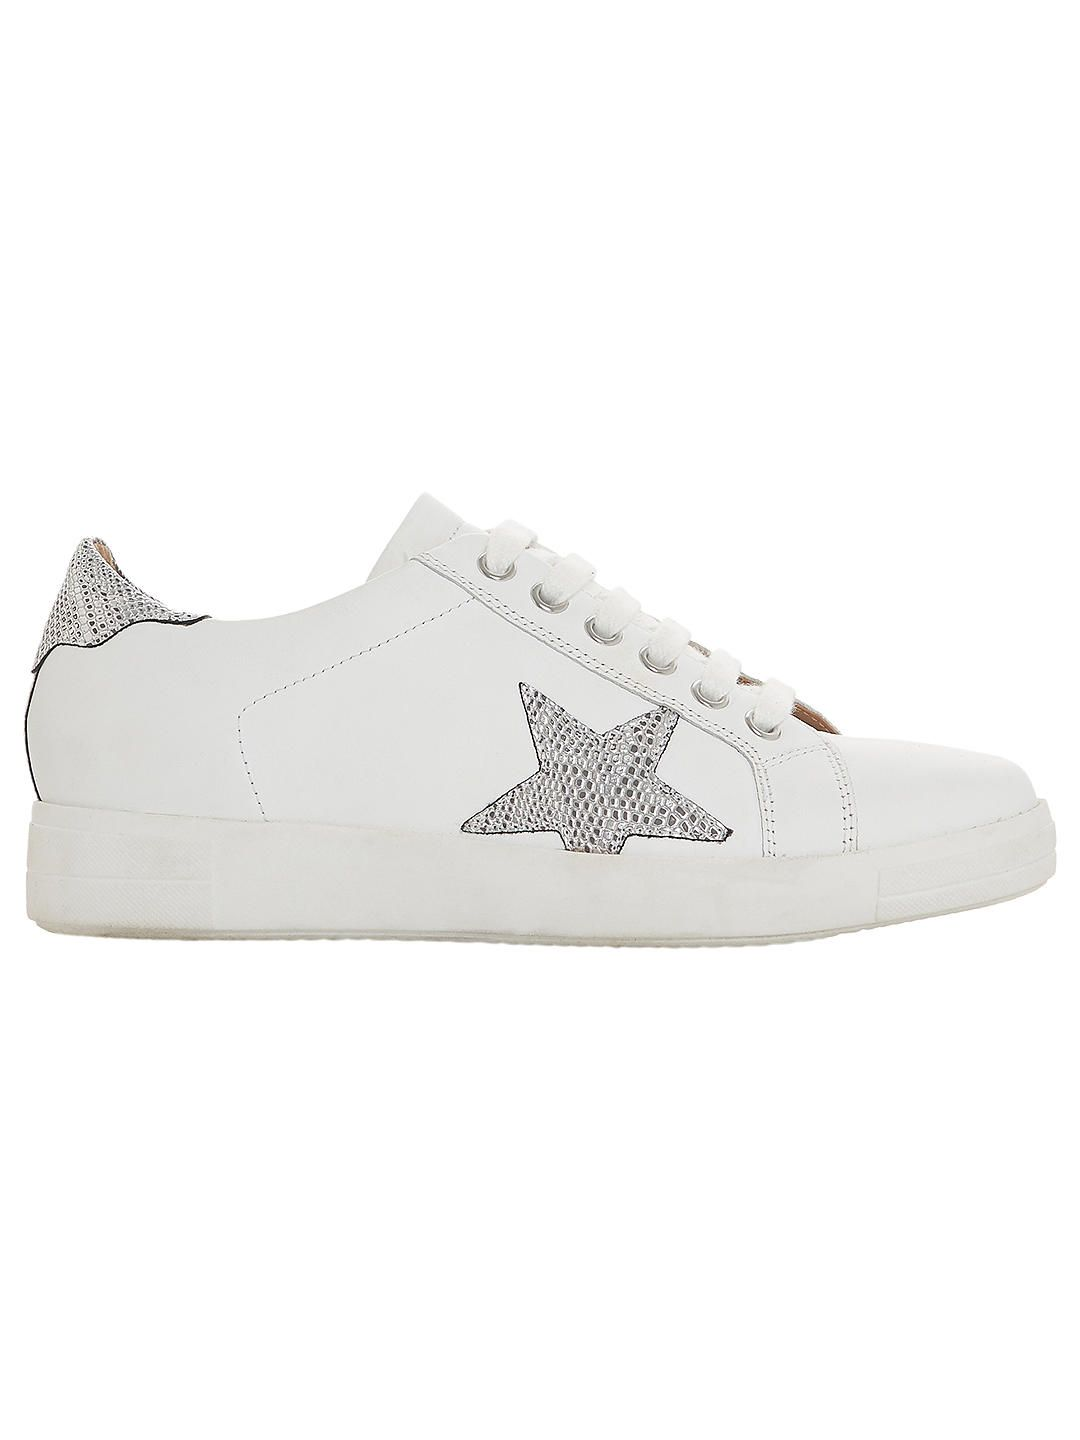 Dune Edris Lace Up Star Trainers, Grey